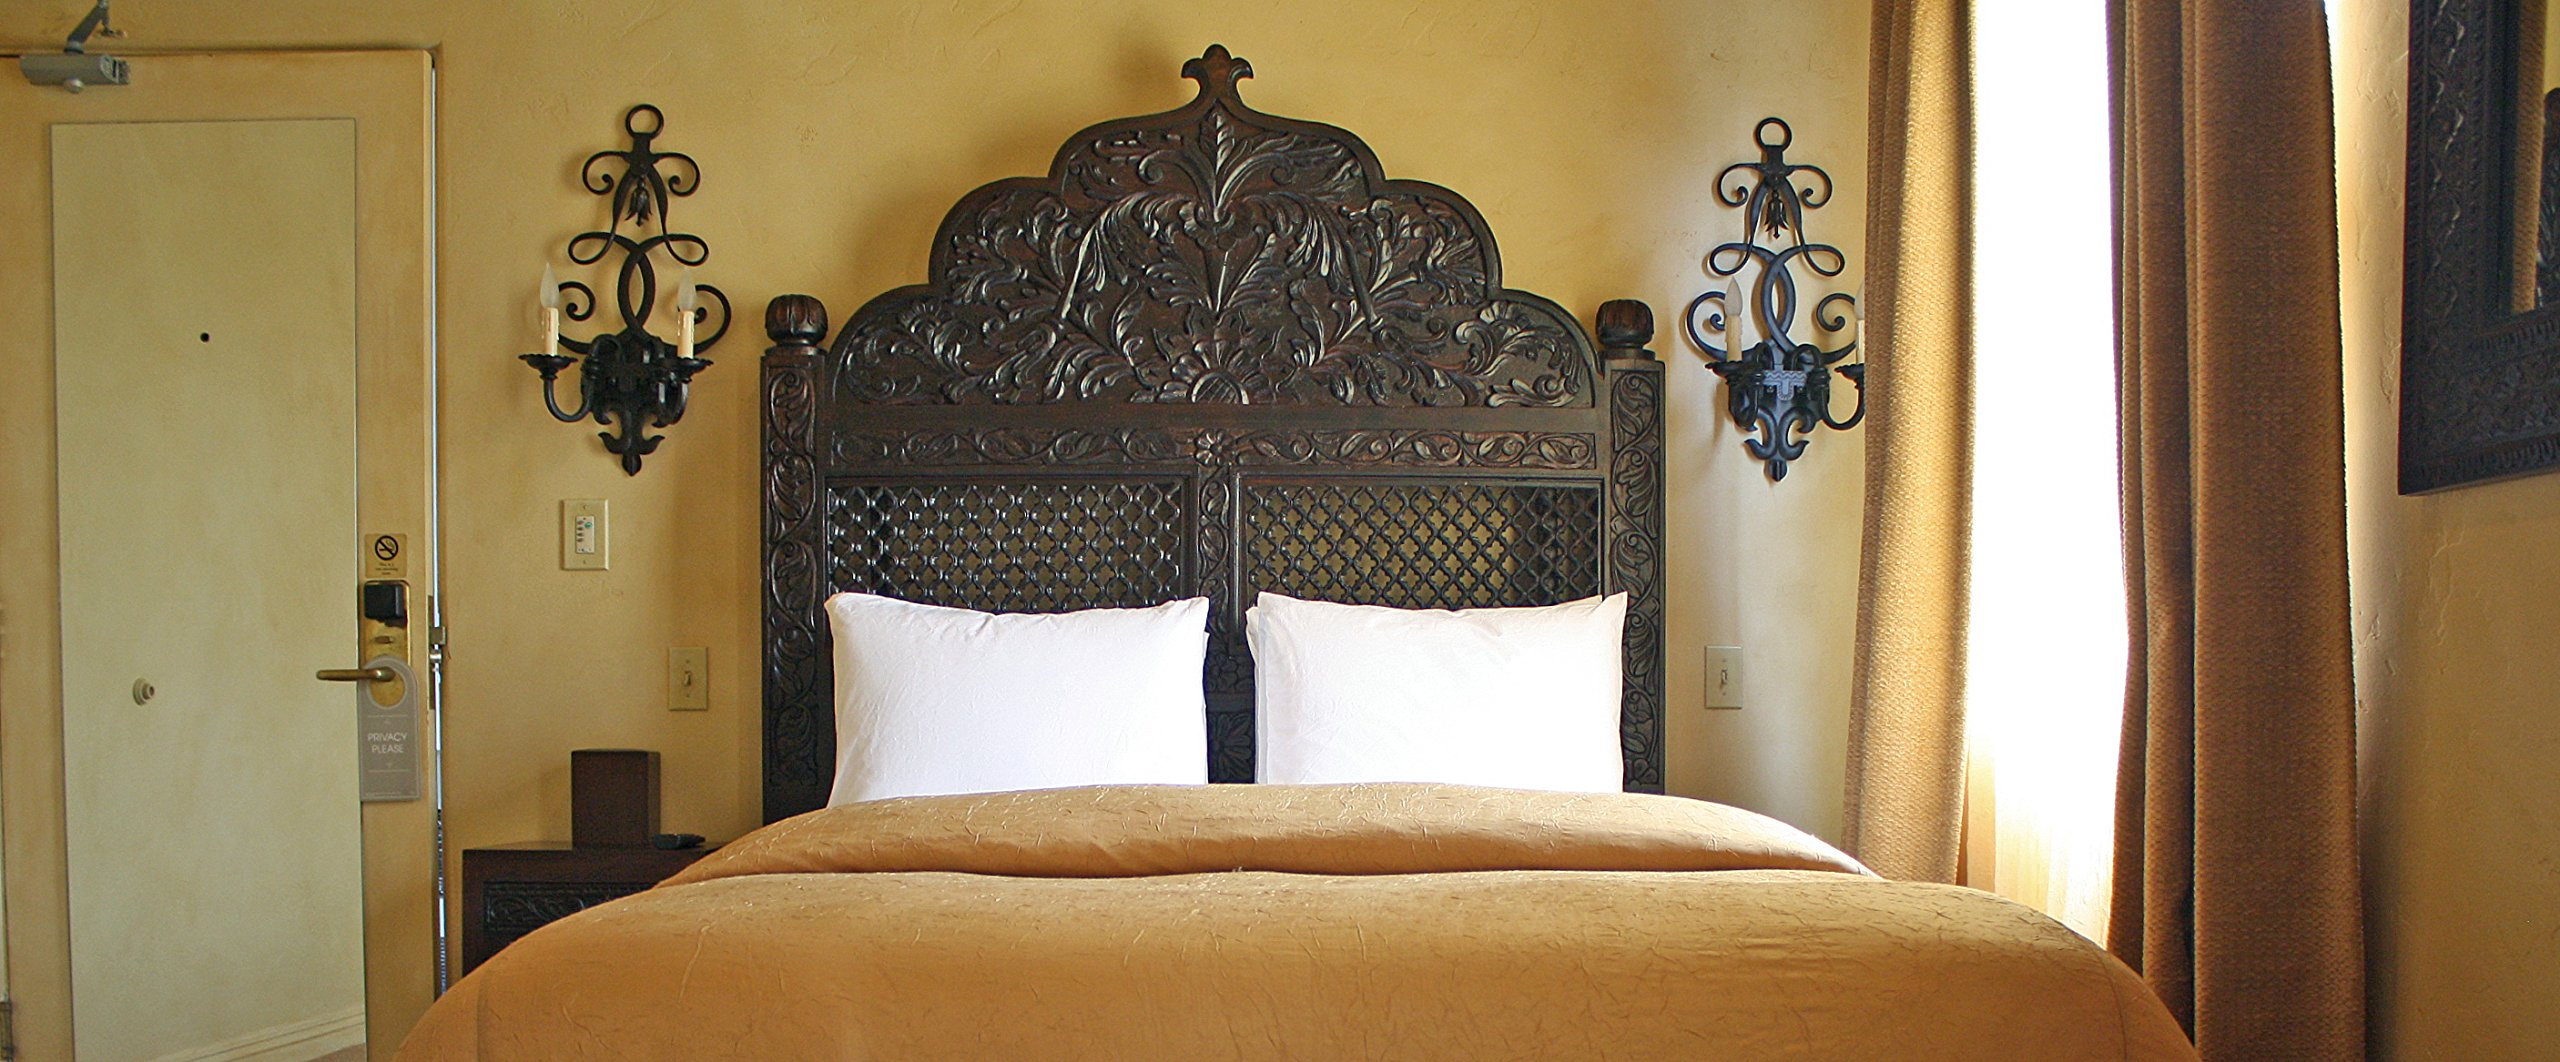 Carved Lattice Headboard by Worldcraft Industries, Queen